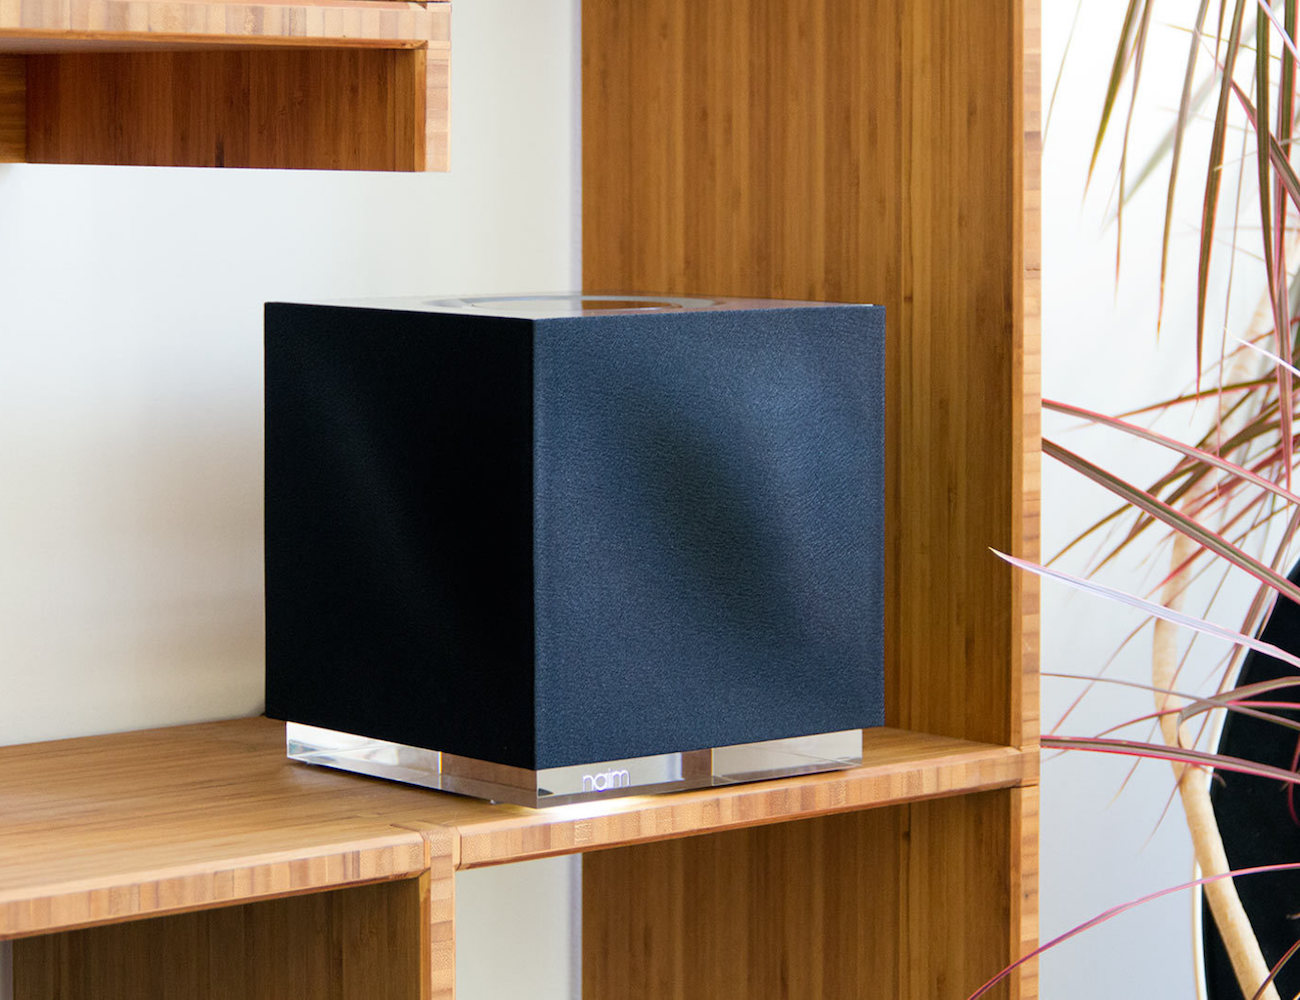 Mu-so Qb Wireless Music System by Naim Audio